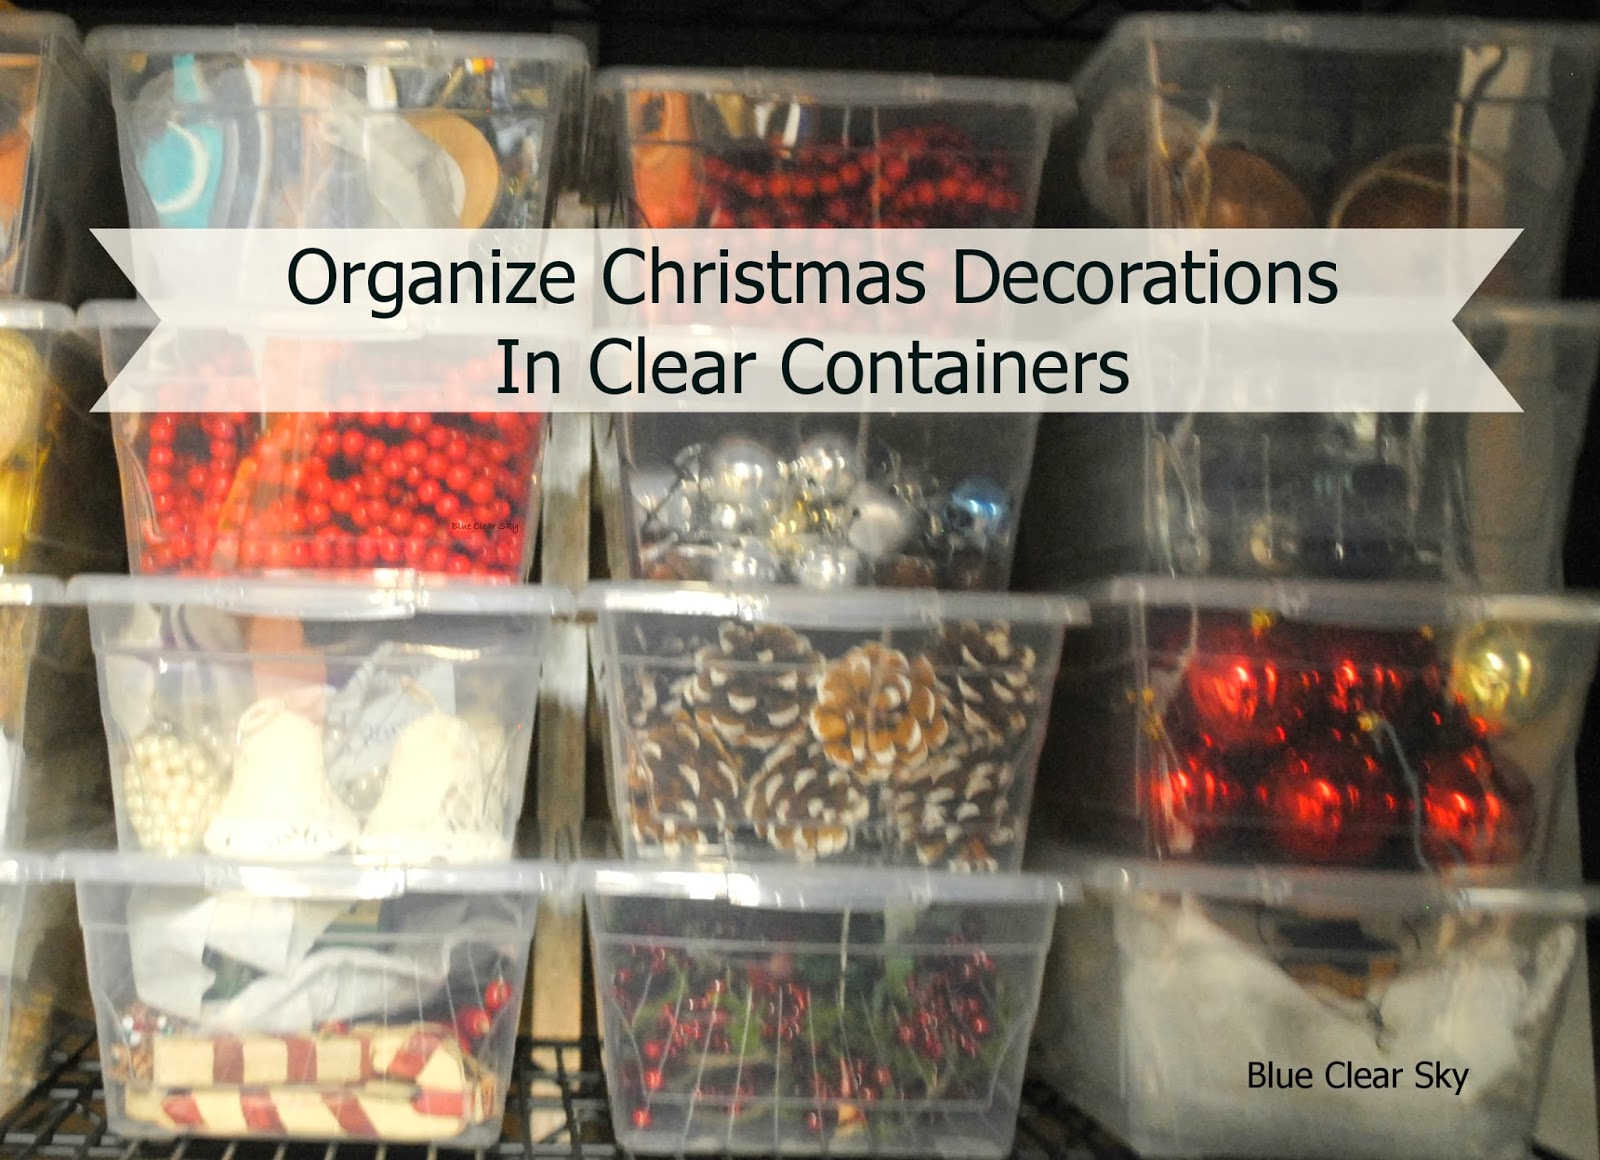 Storage For Christmas Decorations Rustic Maple Organizing Christmas Decorations